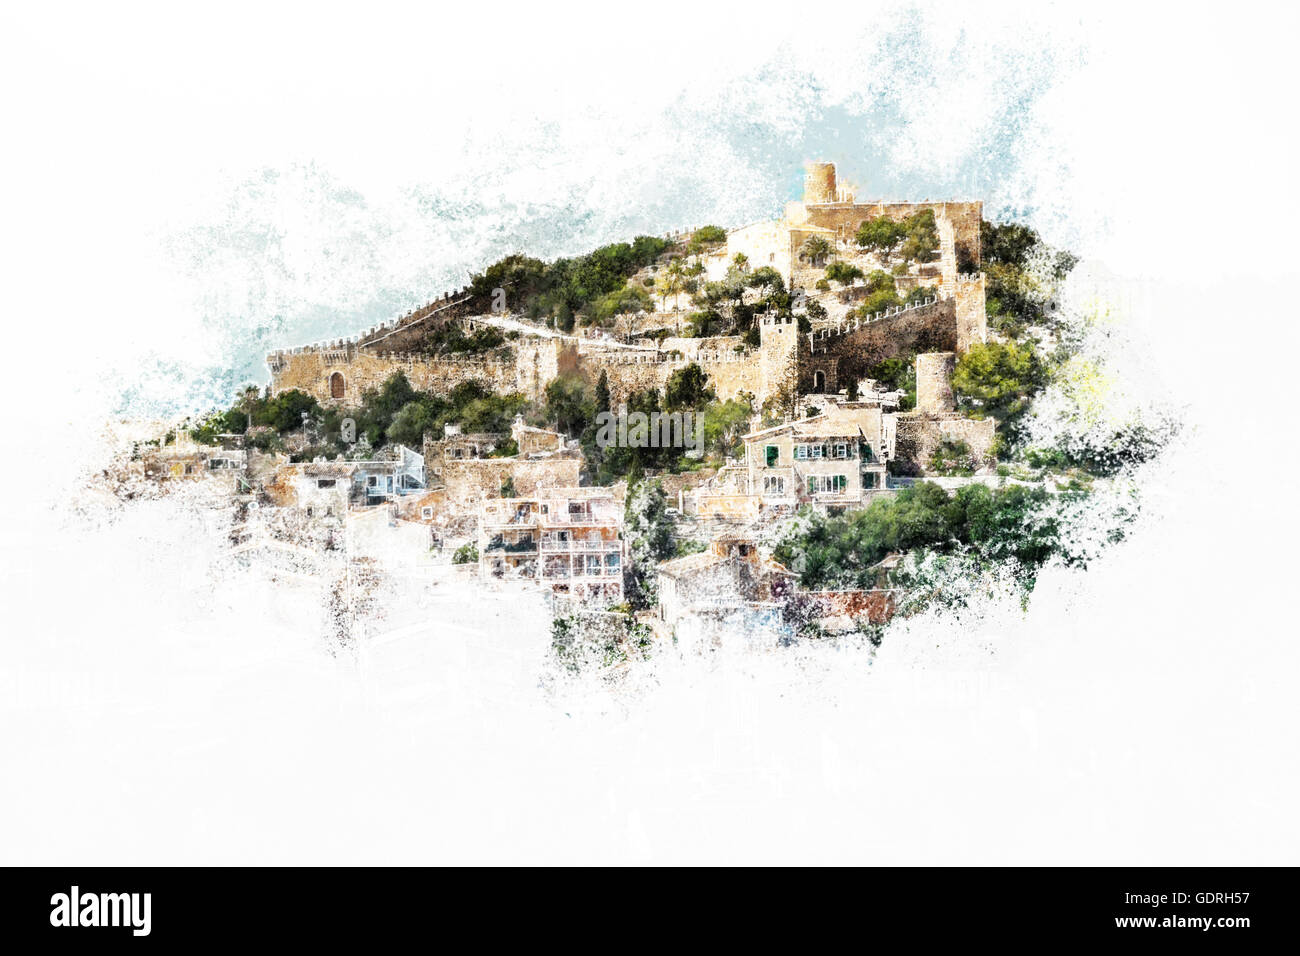 Capdepera castle on green hill in Mallorca - Stock Image